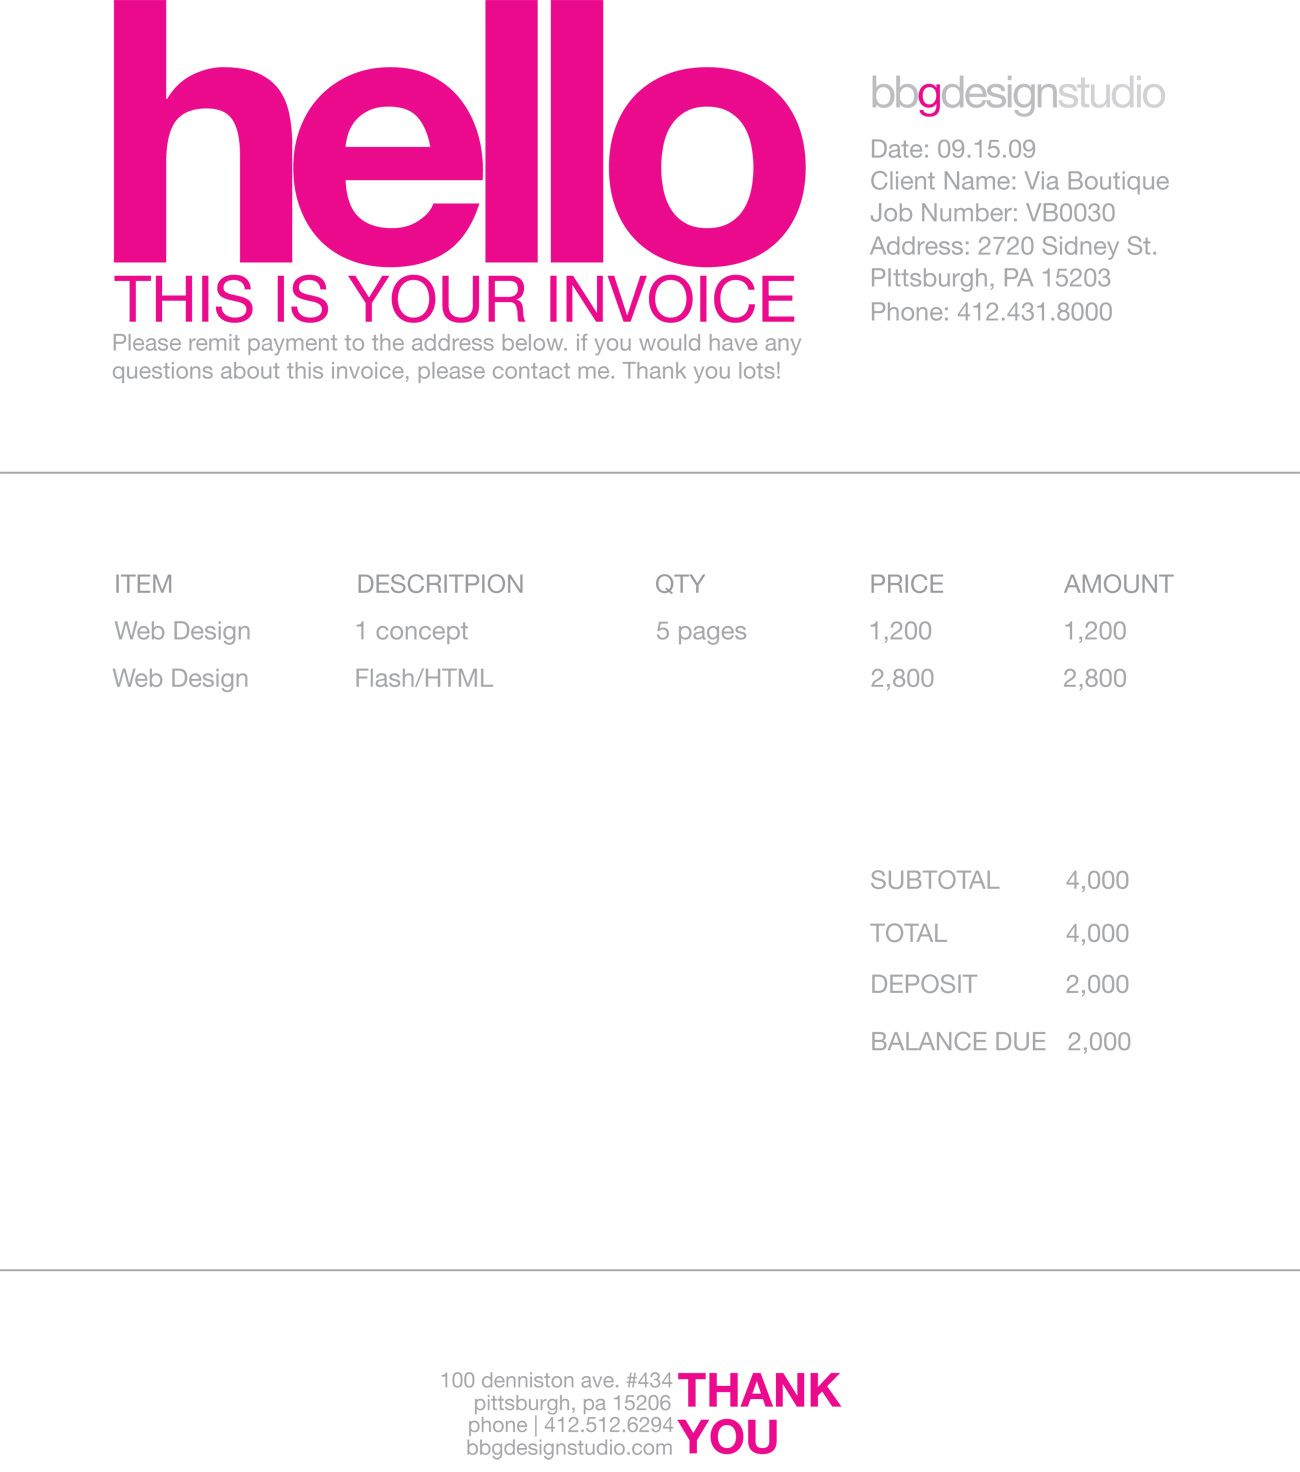 Coolmathgamesus  Winsome  Images About Invoice Design On Pinterest With Lovable Easy Invoice Software Free Besides Car Invoice Cost Furthermore Invoice Record With Delightful When To Invoice Also Proforma Invoice Template Free Download In Addition How To Create An Invoice Template In Excel And Invoice Apps For Android As Well As Invoices Template Free Additionally Create Tax Invoice From Pinterestcom With Coolmathgamesus  Lovable  Images About Invoice Design On Pinterest With Delightful Easy Invoice Software Free Besides Car Invoice Cost Furthermore Invoice Record And Winsome When To Invoice Also Proforma Invoice Template Free Download In Addition How To Create An Invoice Template In Excel From Pinterestcom